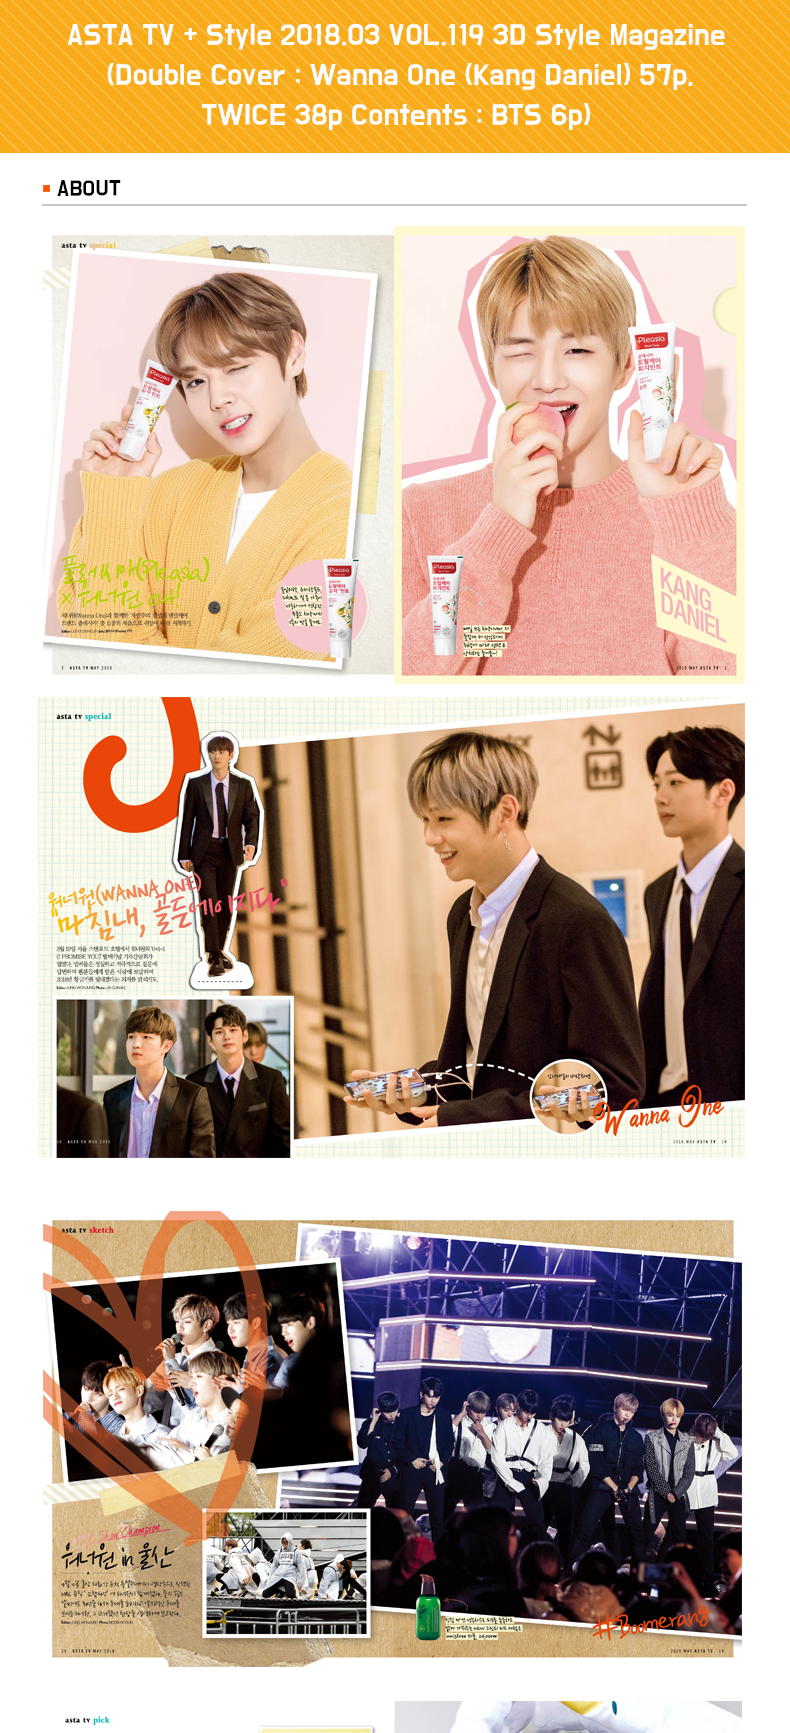 ASTA TV + Style 2018.05 VOL.119 3D Style Magazine (Double Cover : Wanna One (Kang Daniel) 57p, TWICE 38p Contents : BTS 6p)